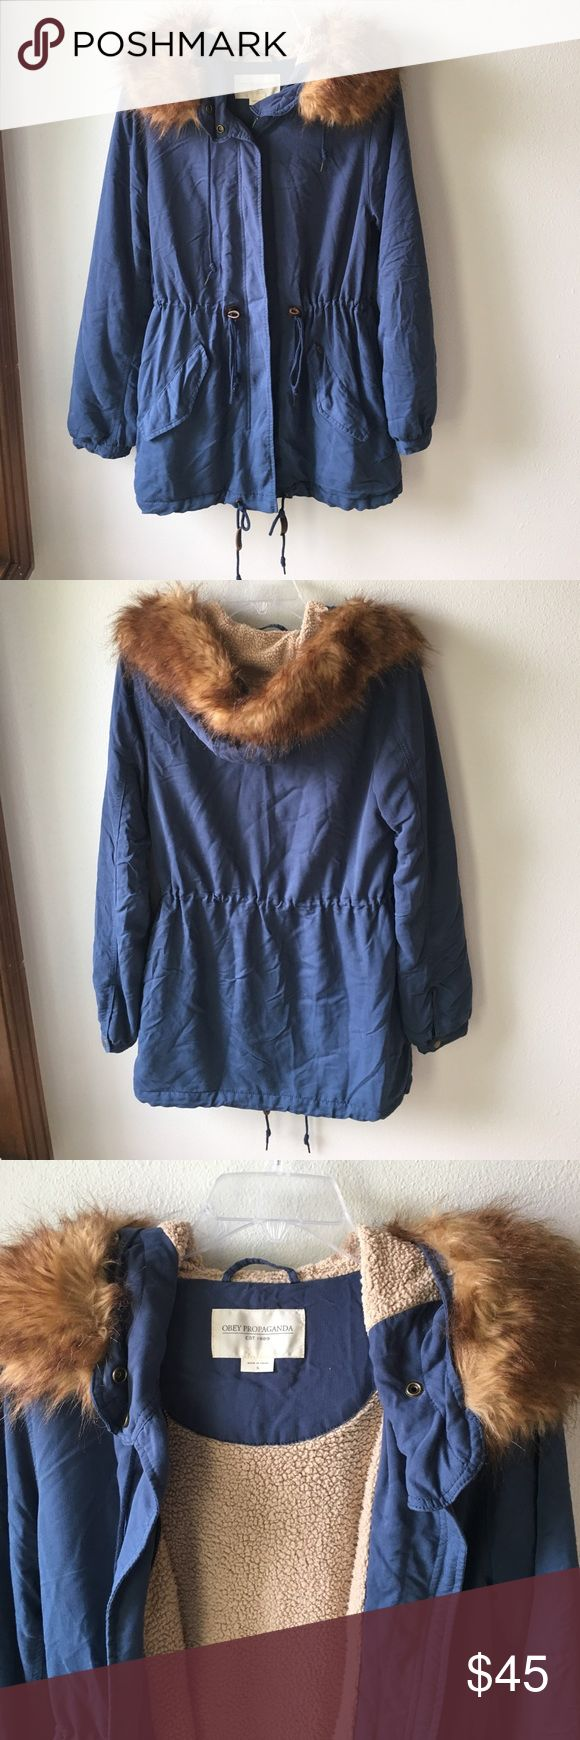 Obey Knightsbridge parka Soft and cozy blue parka by Obey Propaganda. Has really soft fleece on the inside that keeps you nice and warm. Faux fur on hood is removable. ❤💁🏼 Obey Jackets & Coats Utility Jackets